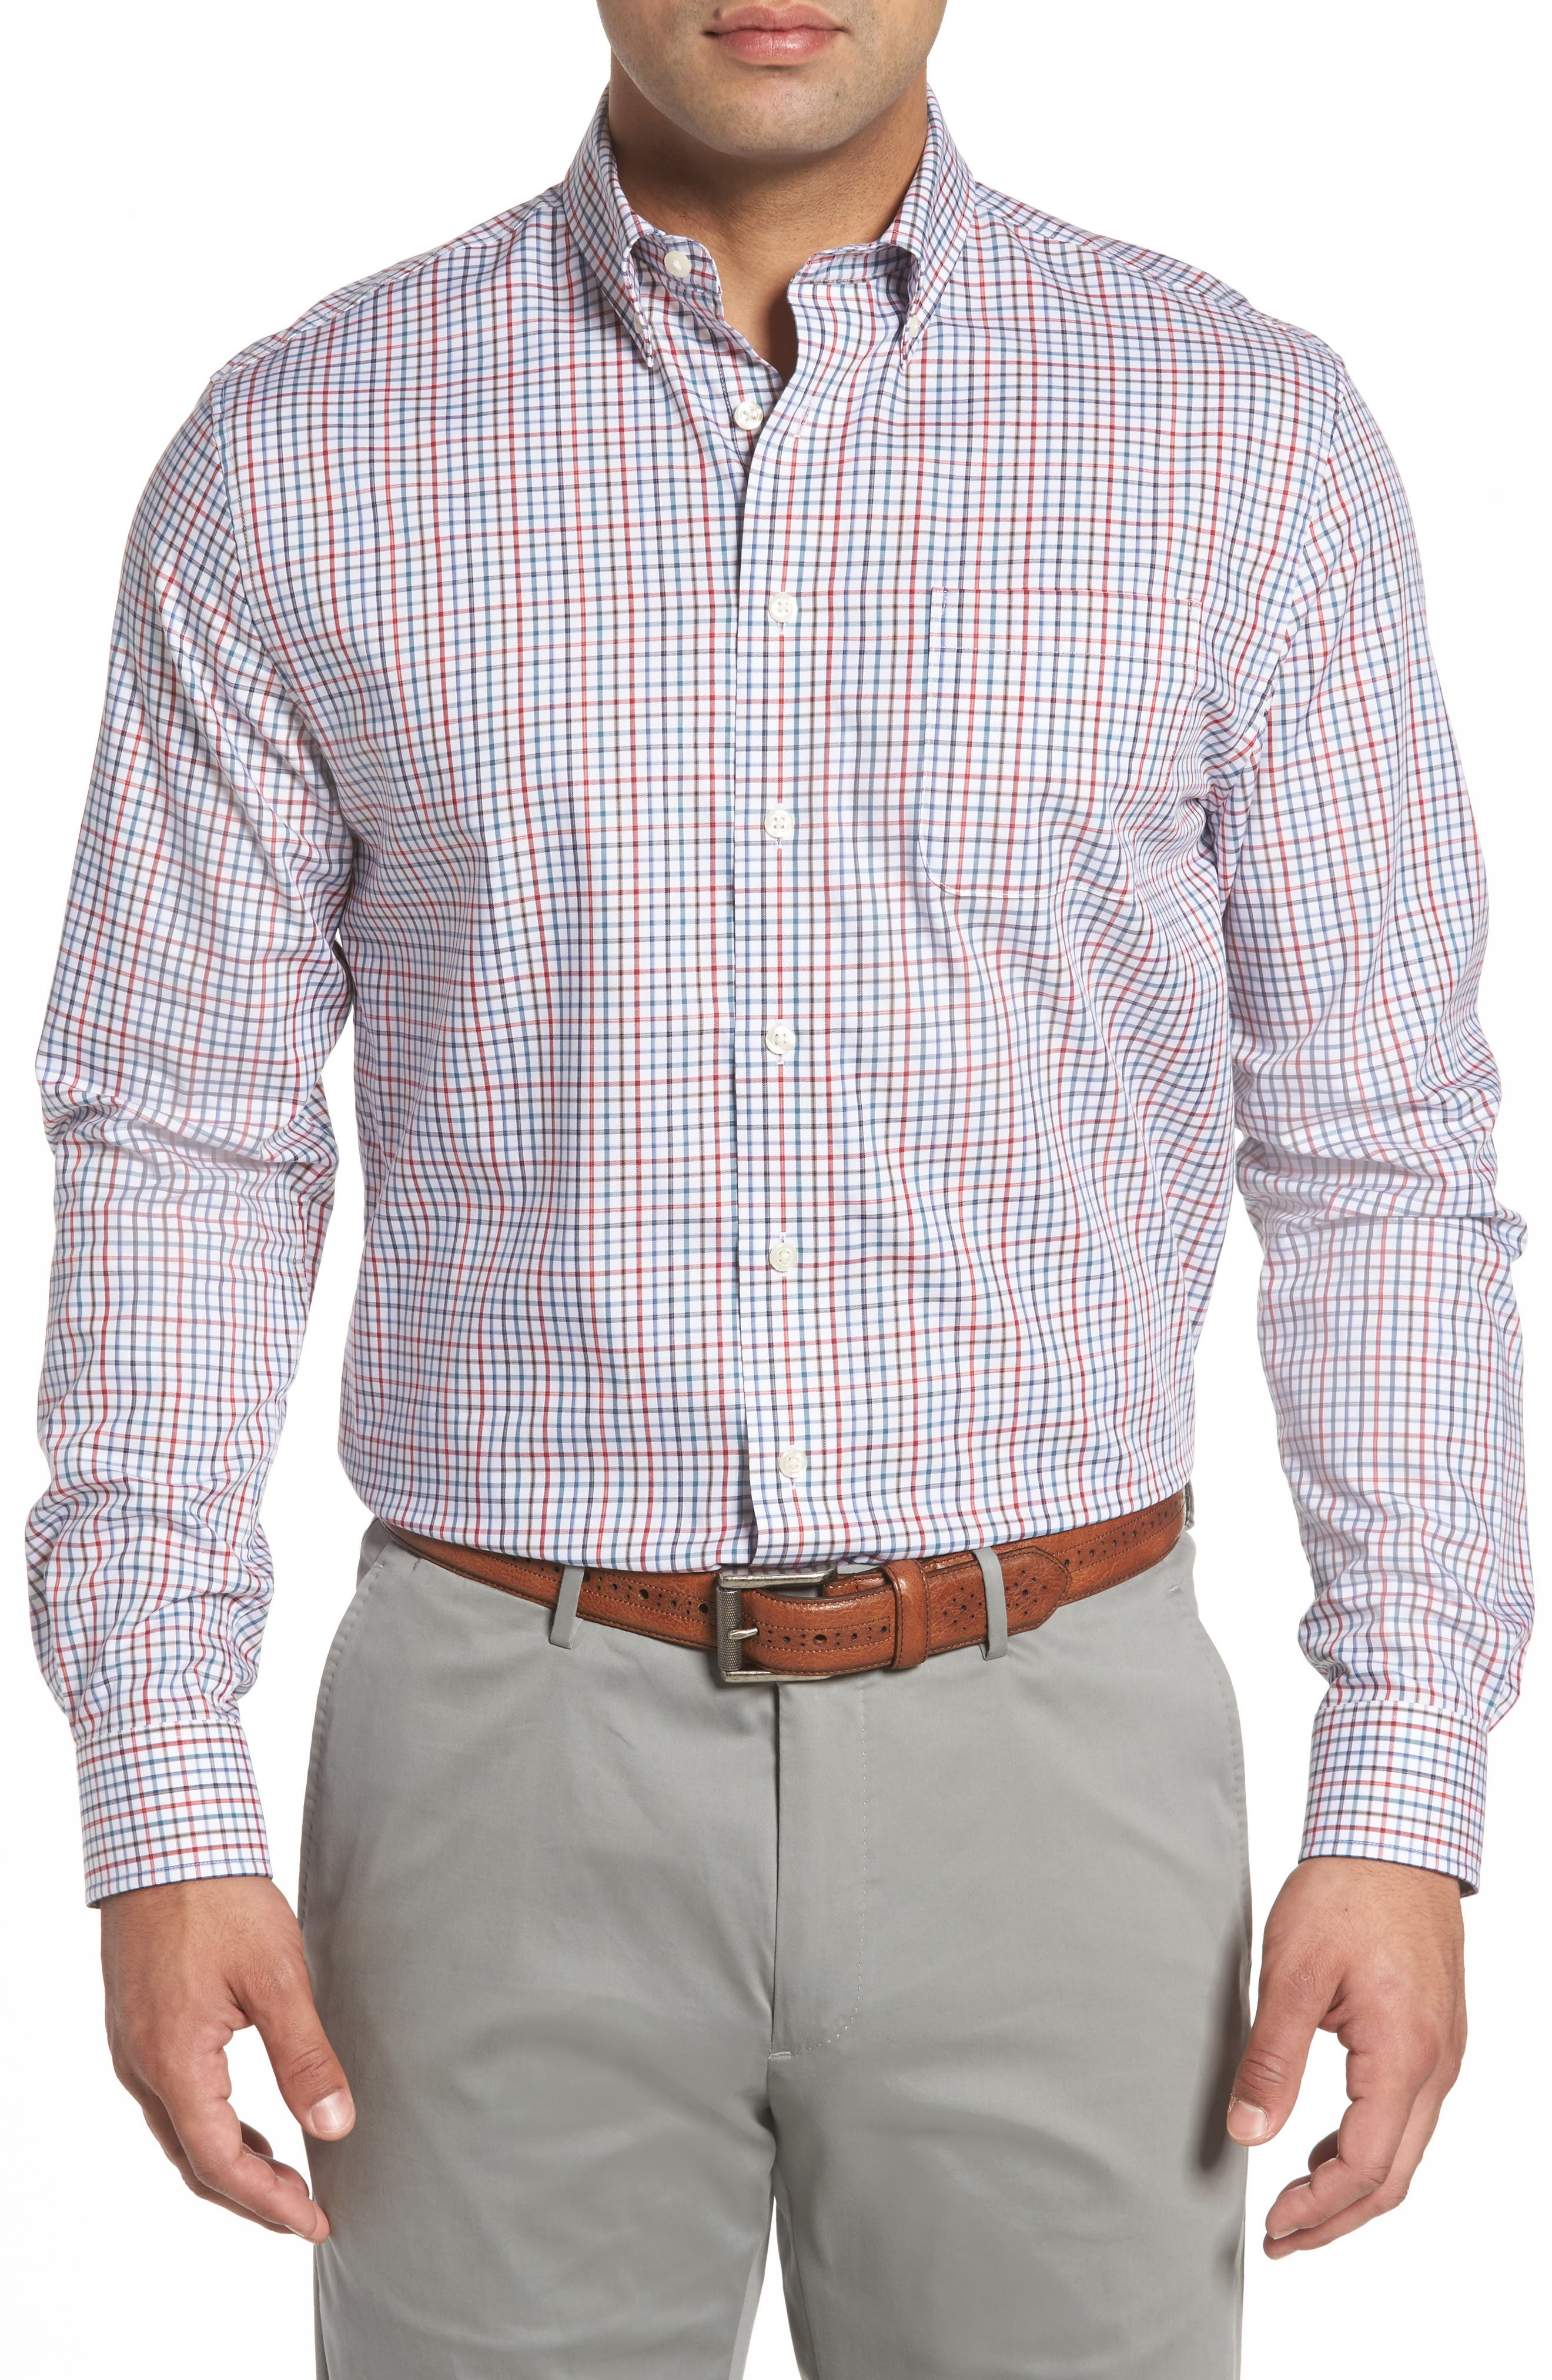 Main Image - johnnie-O Snyder Classic Fit Check Sport Shirt